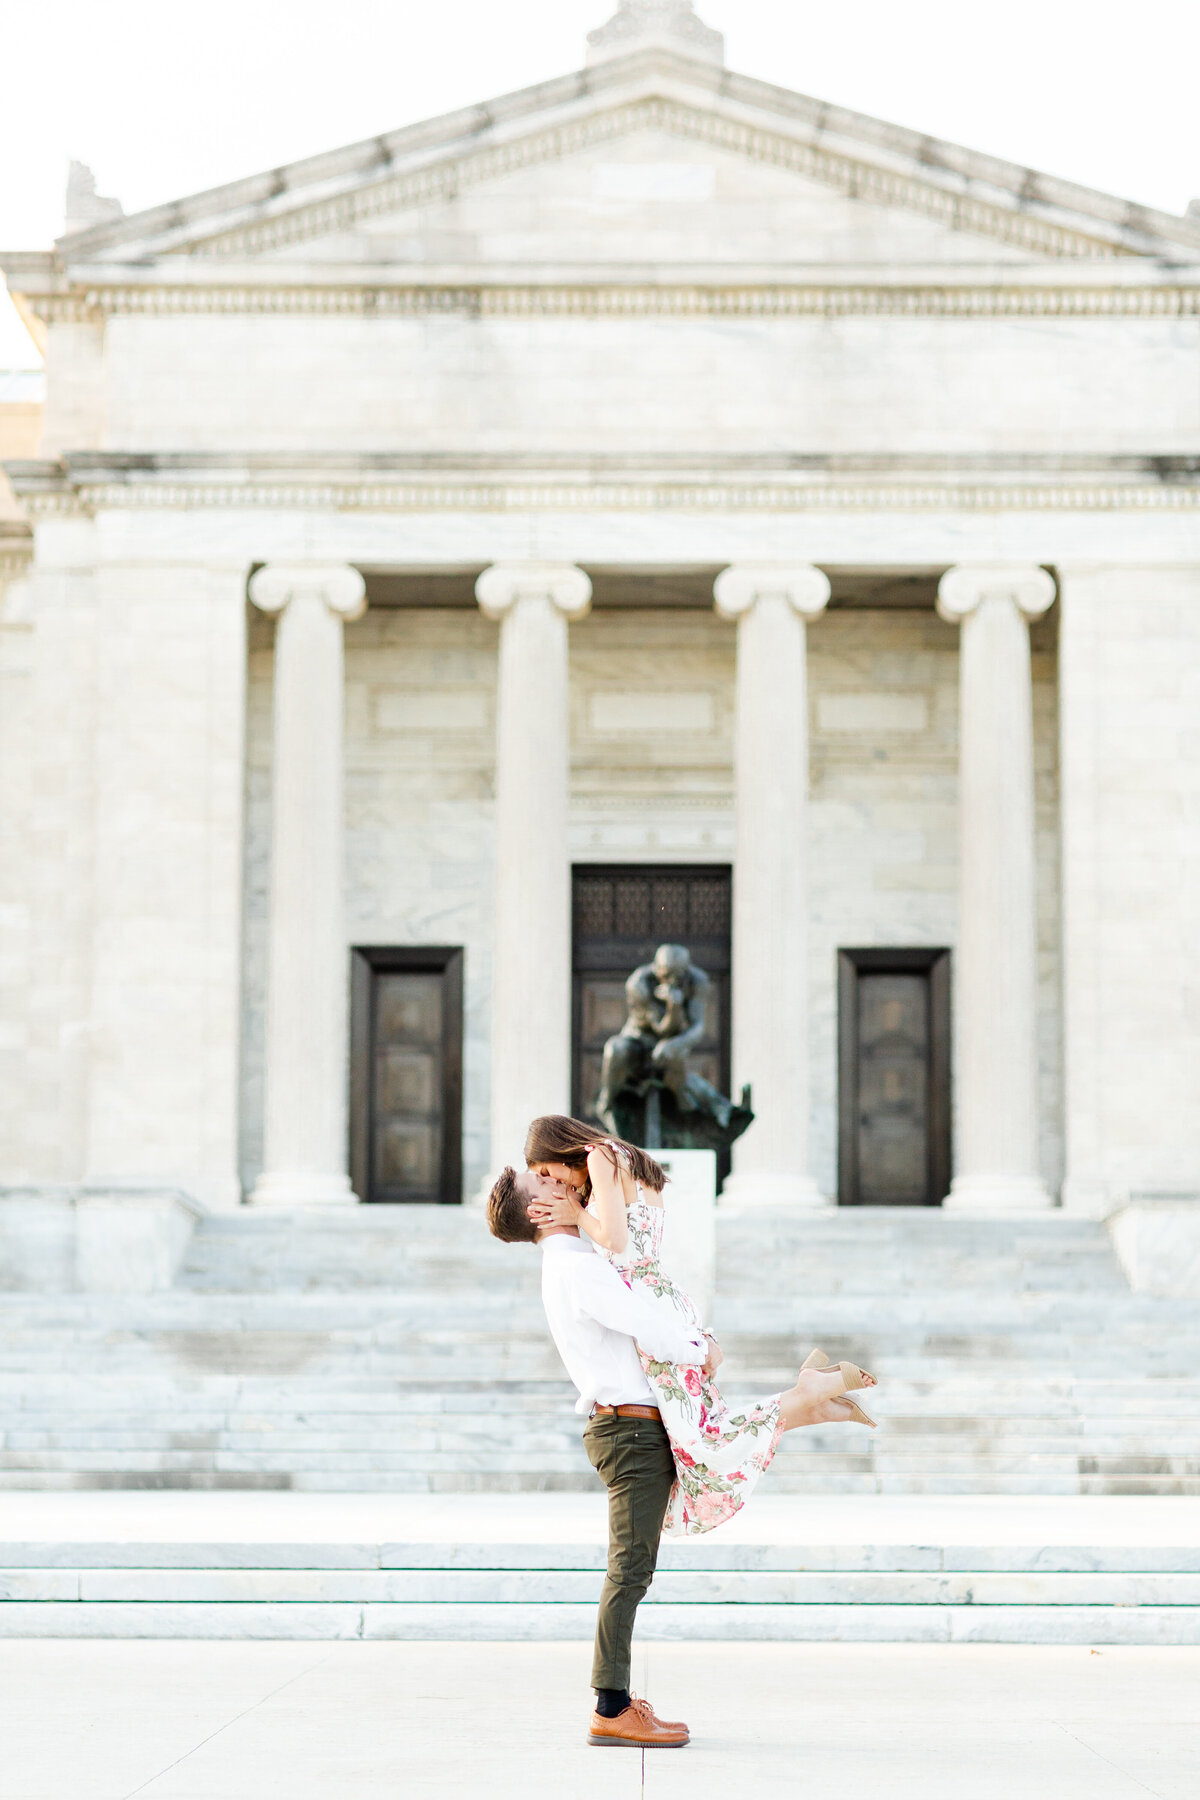 The-Cannons-Photography-Cleveland-Museum- of -Art- Wedding-photographer-Cleveland-wedding-photographer-147